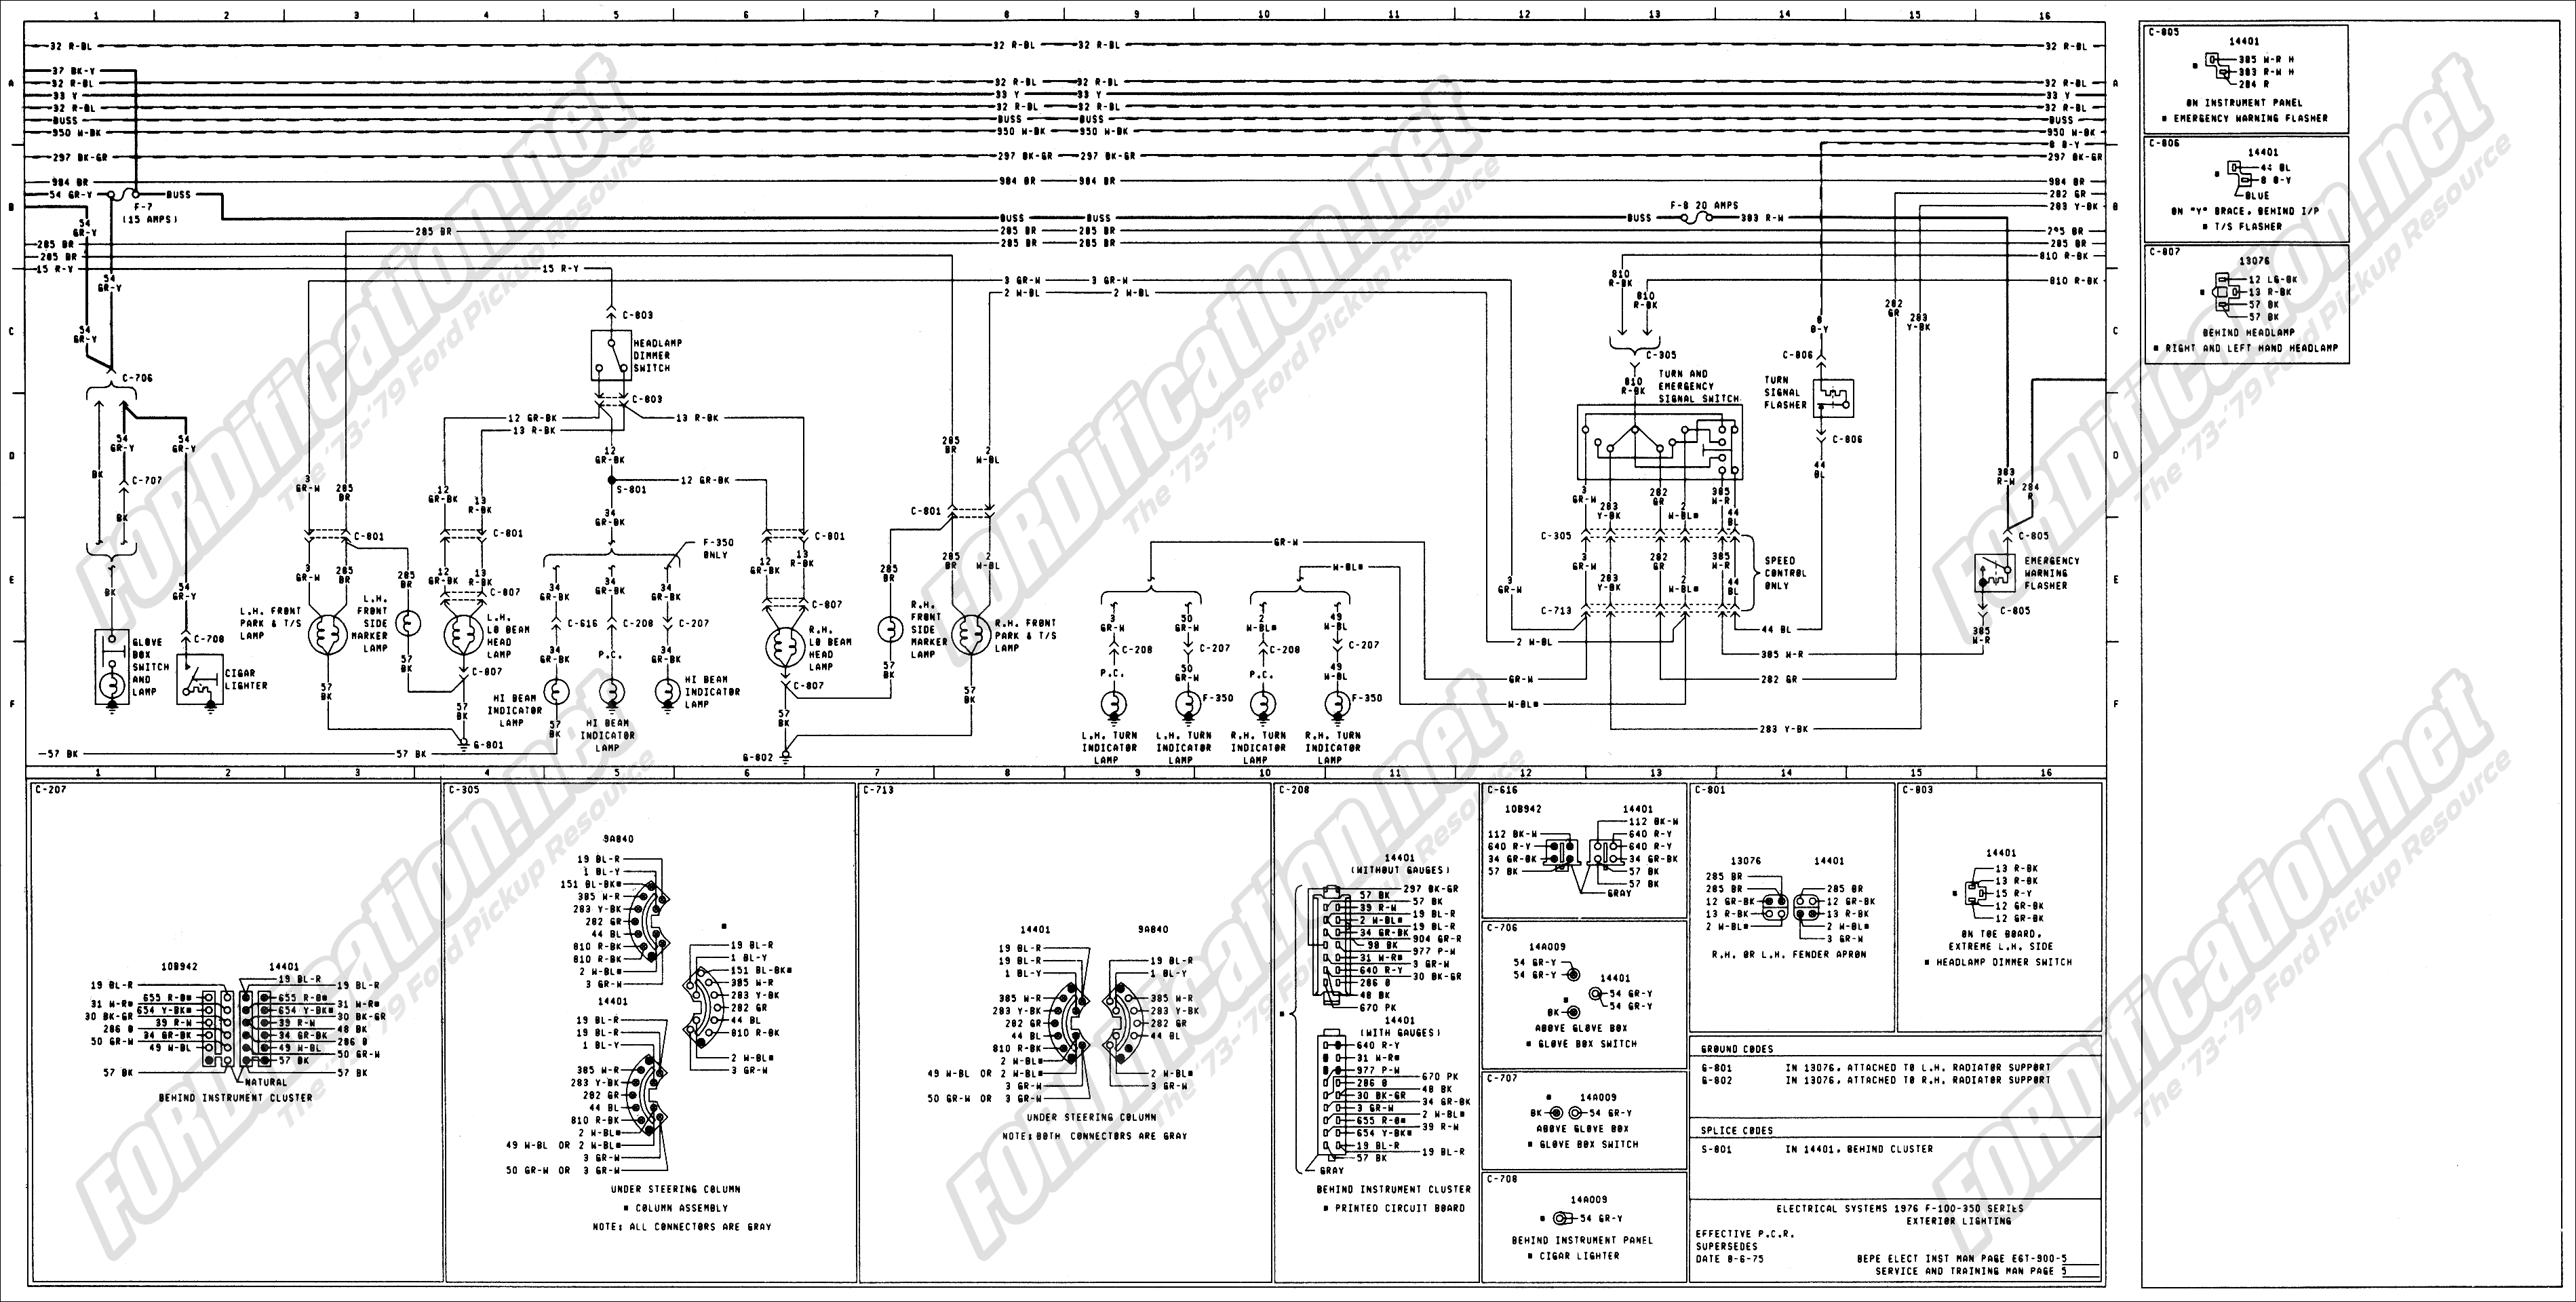 wiring_76master_5of9 1973 1979 ford truck wiring diagrams & schematics fordification net Ford Truck Wiring Harness at crackthecode.co